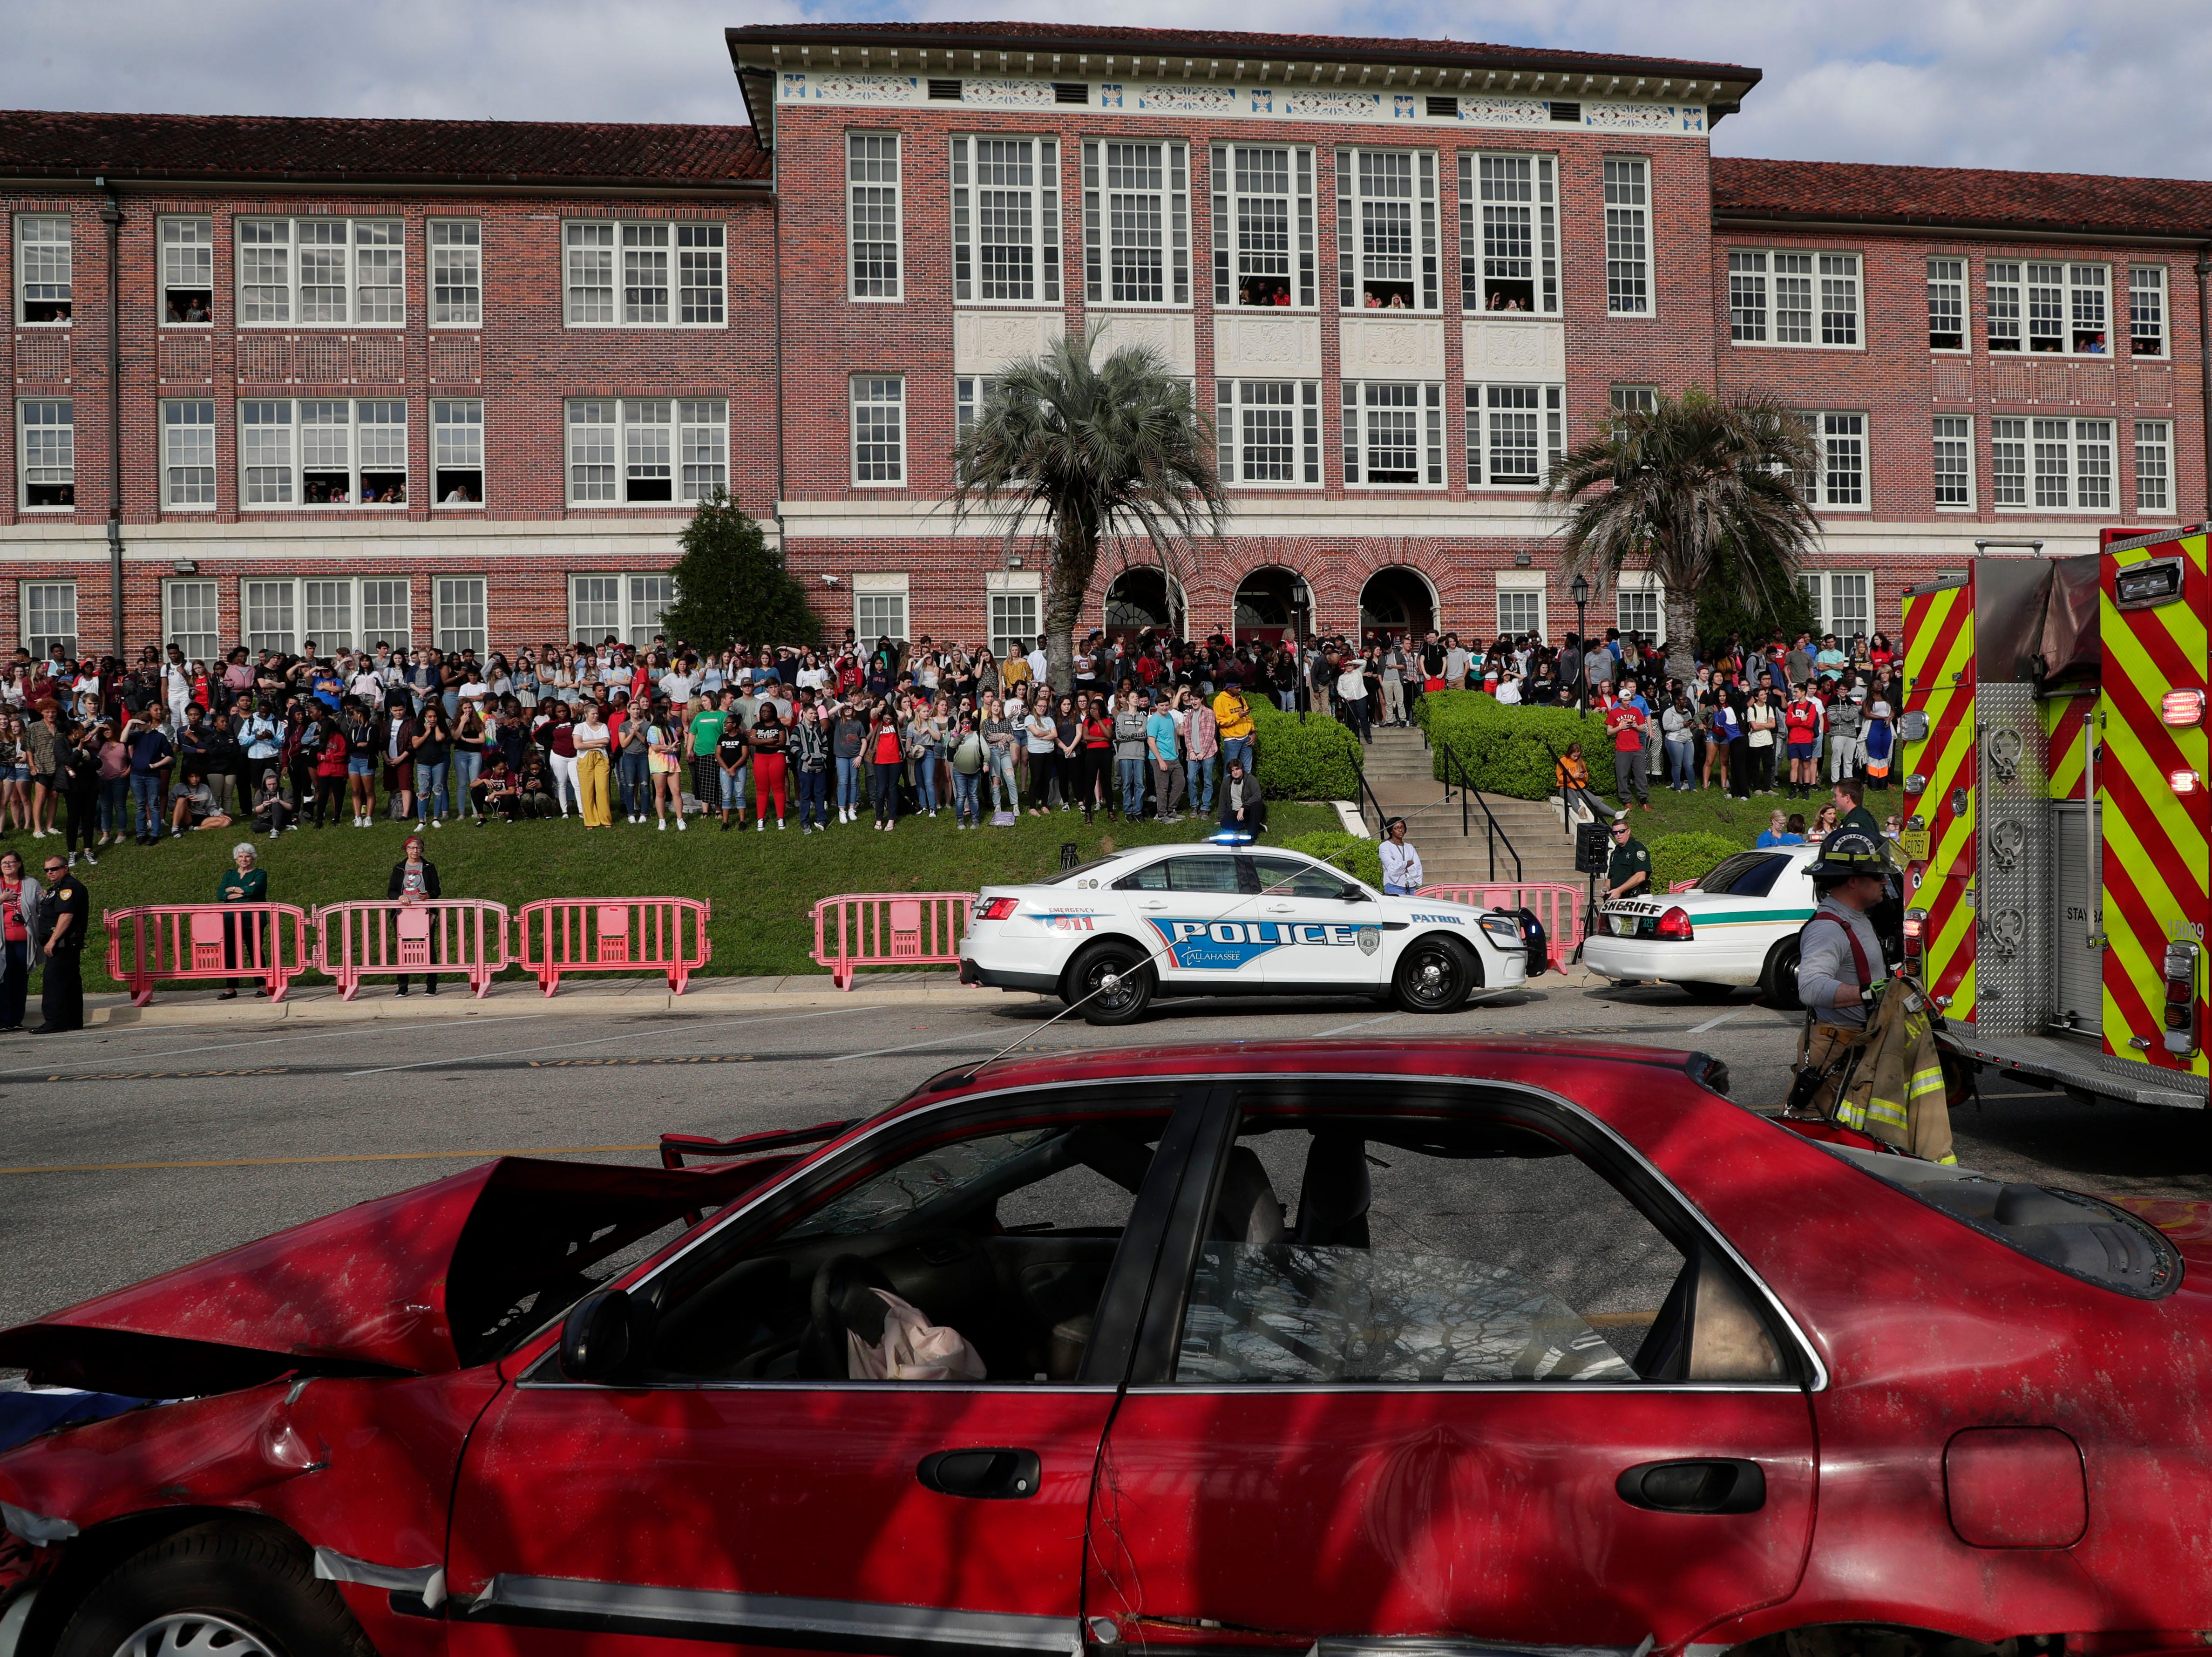 Hundreds of students fill the lawn of Leon High School to watch as Leon High School partners with the county safety officials to give a simulation on the consequences of drunk driving before the students leave for spring break Friday, March 15, 2019.